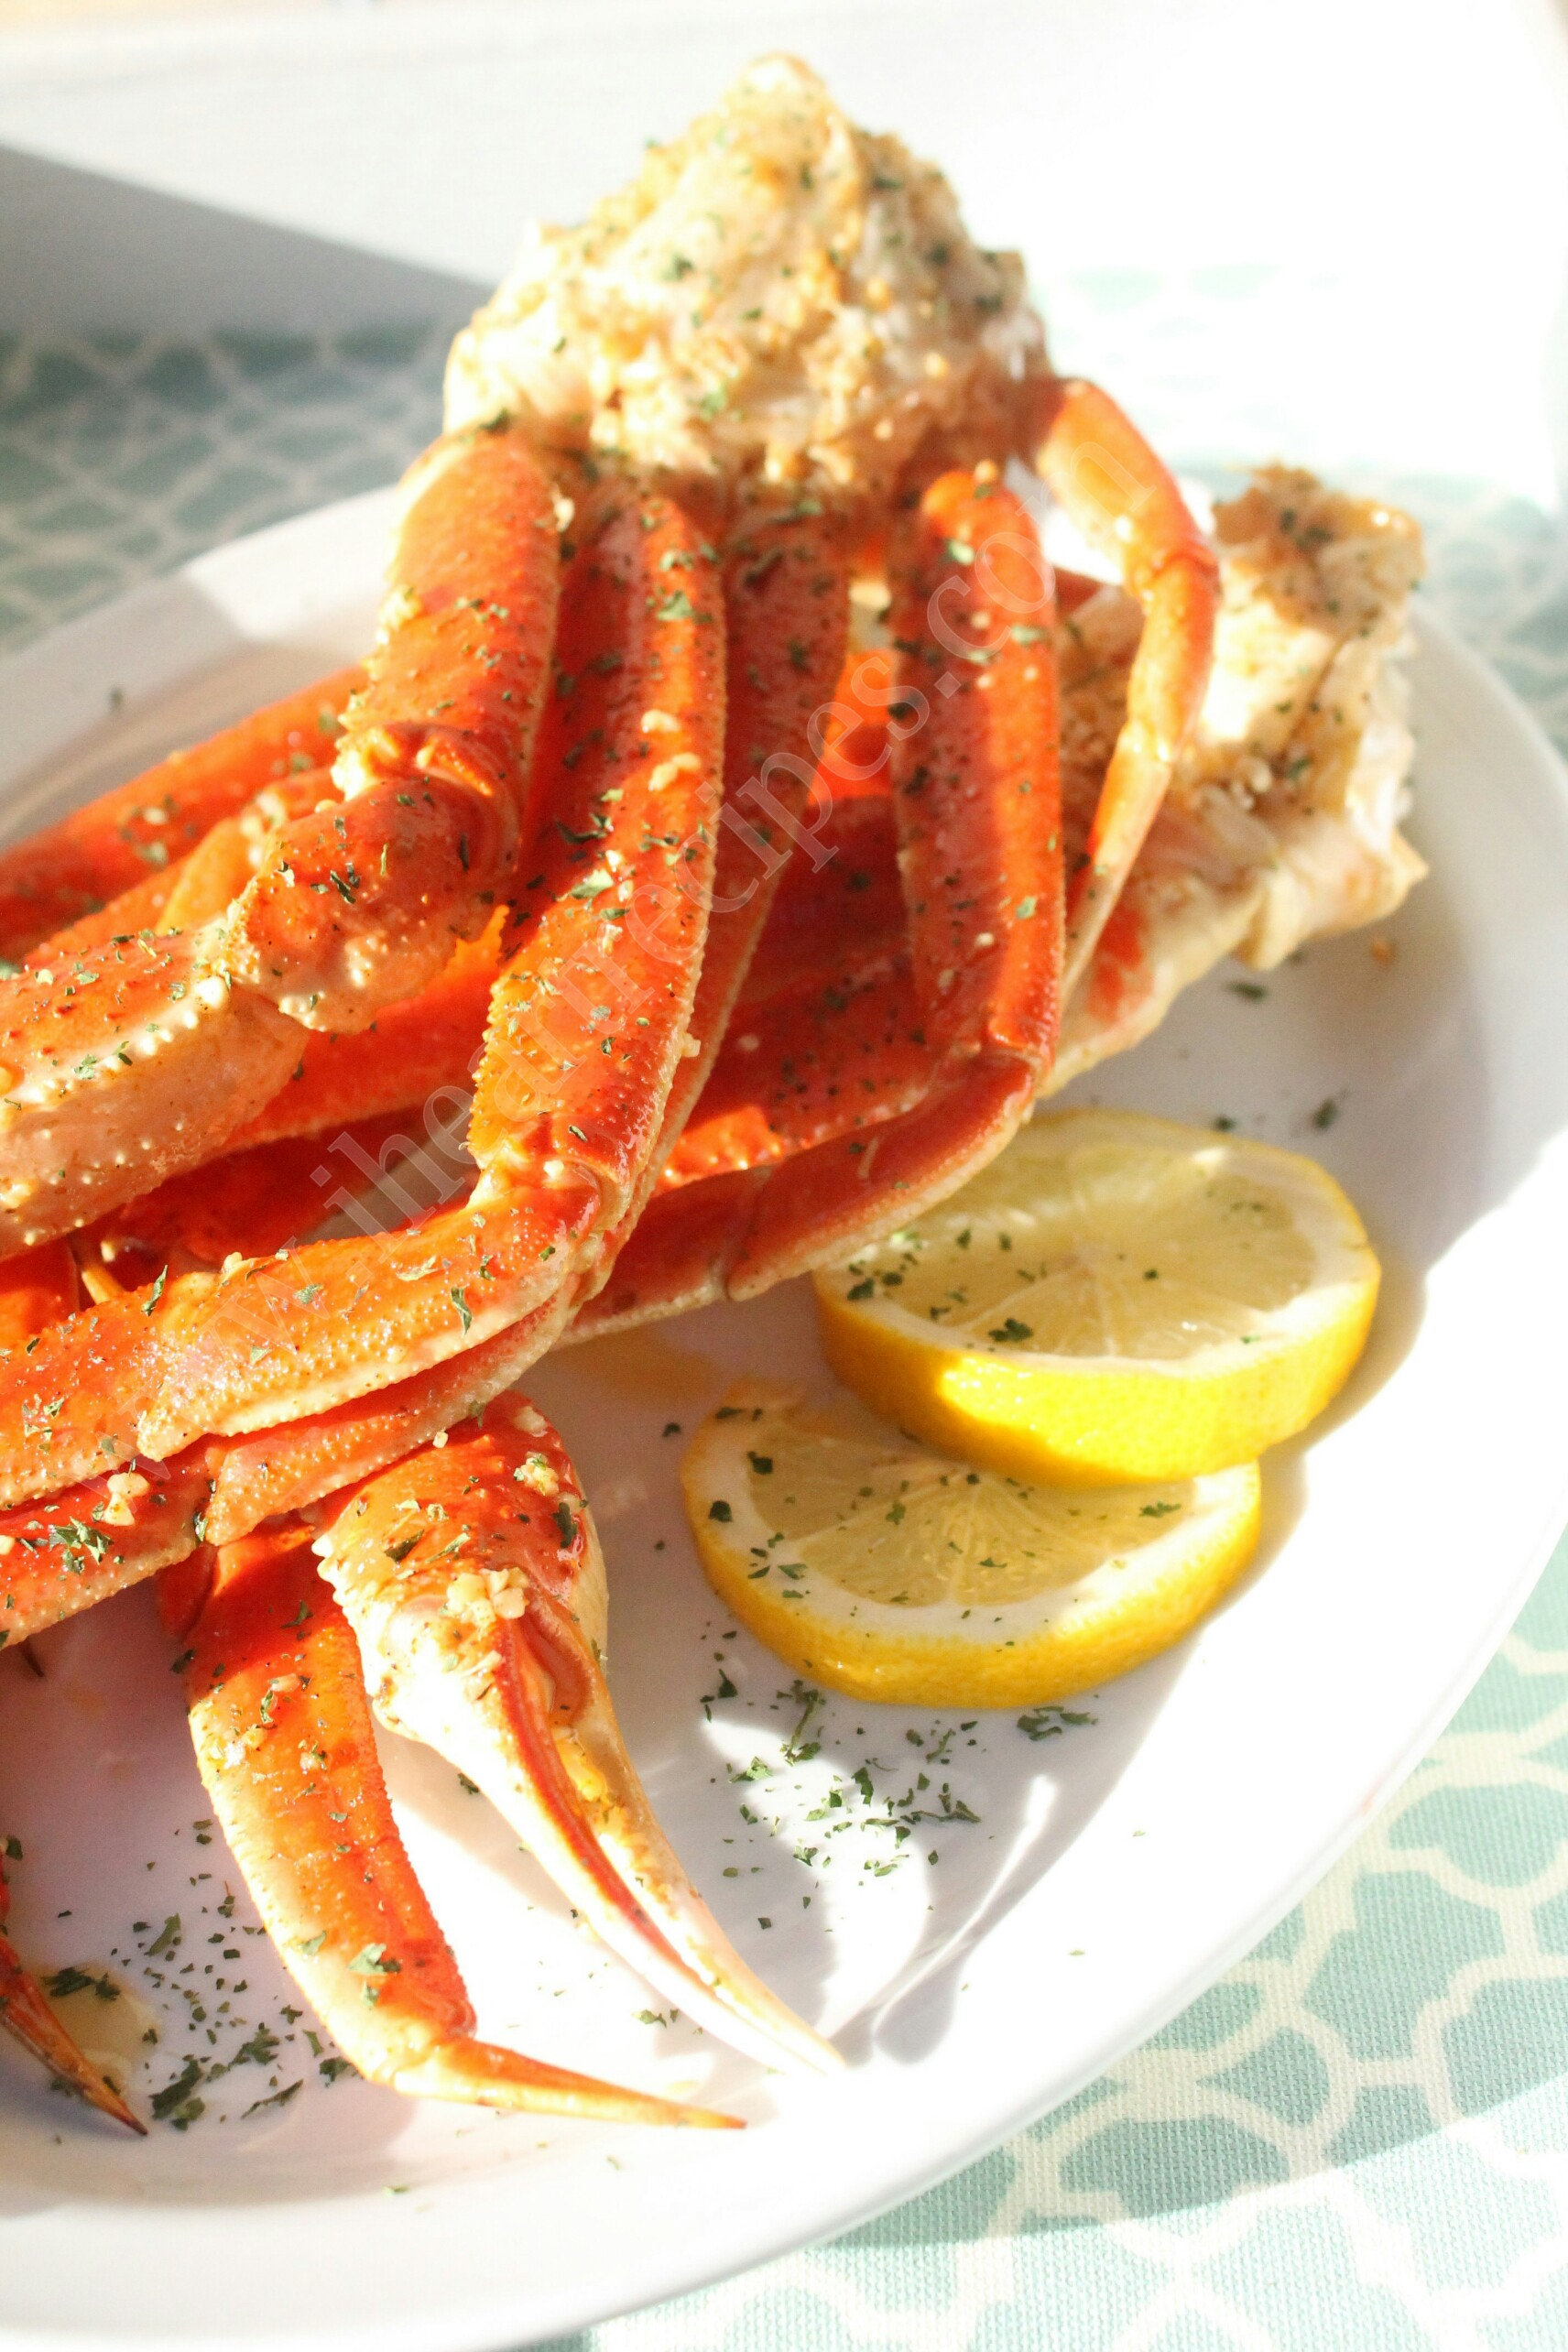 Cook frozen snow crab legs in oven